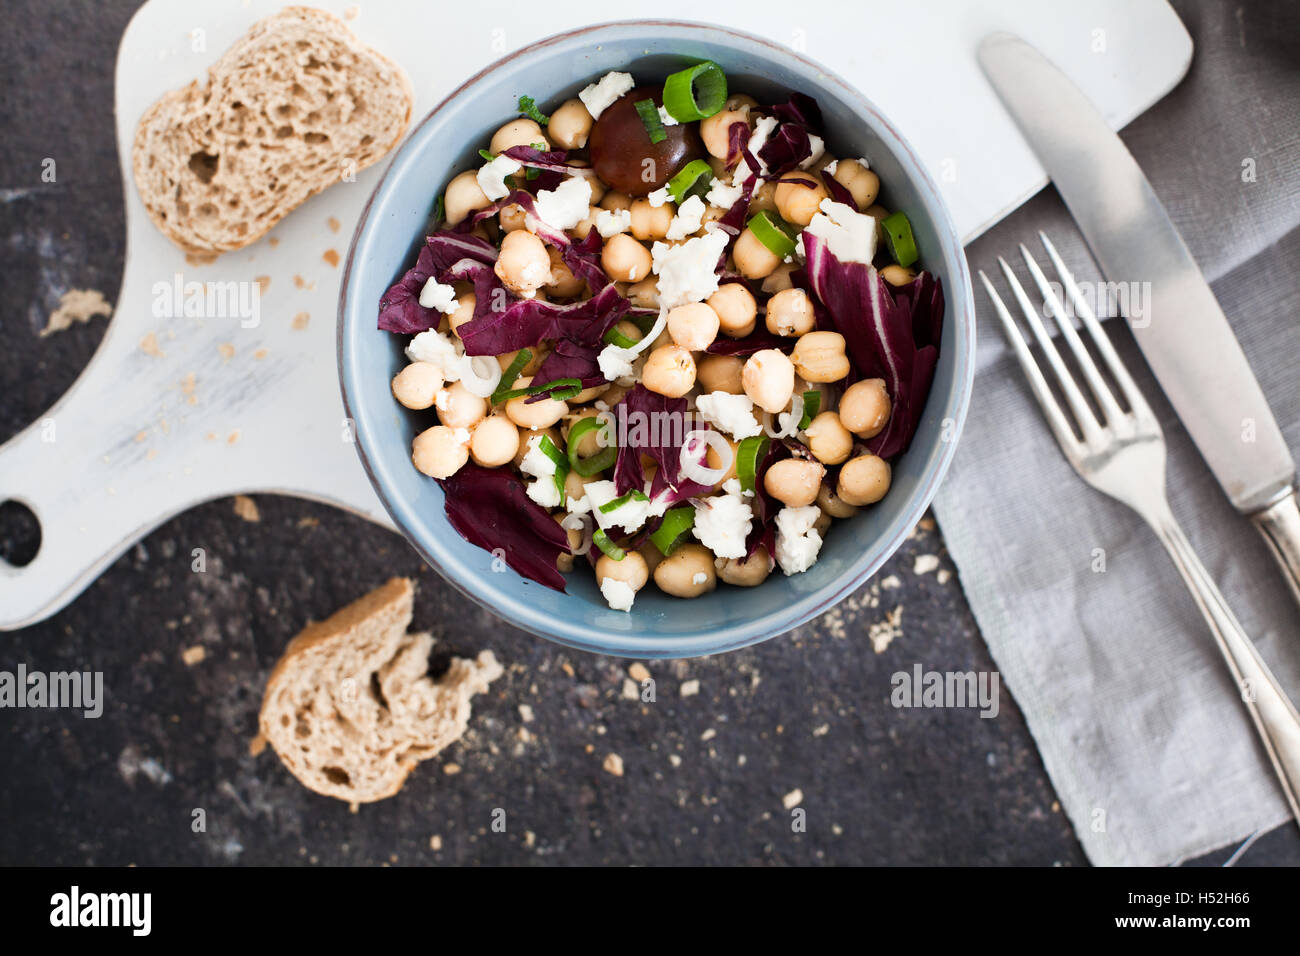 Vegetarian chick pea salad with feta cheese - Stock Image